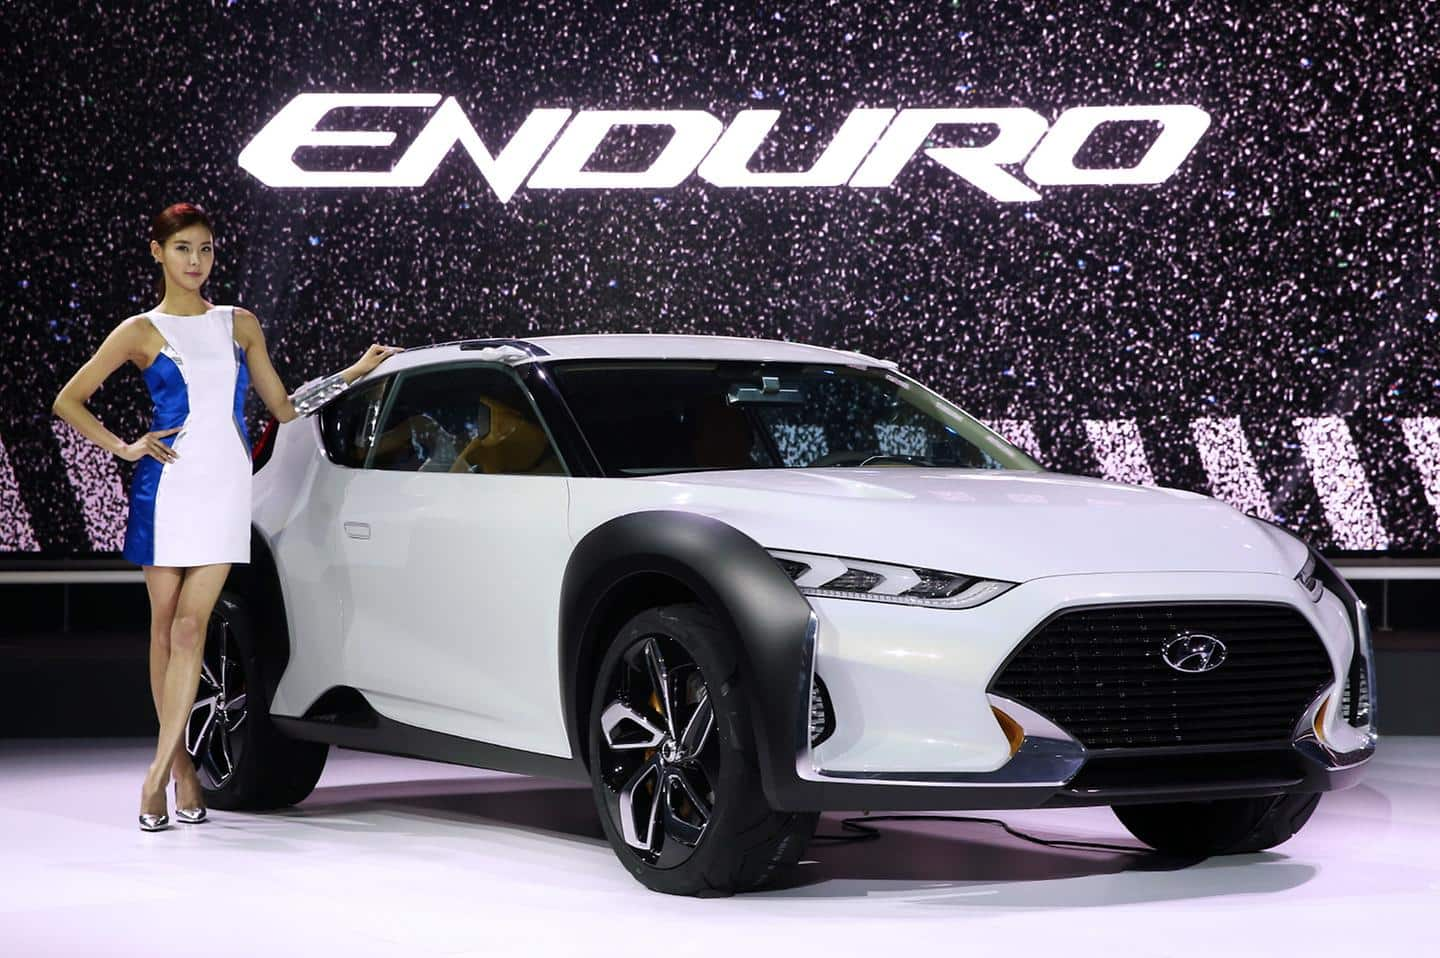 Hyundai Motor at the 2015 Seoul Motor Show